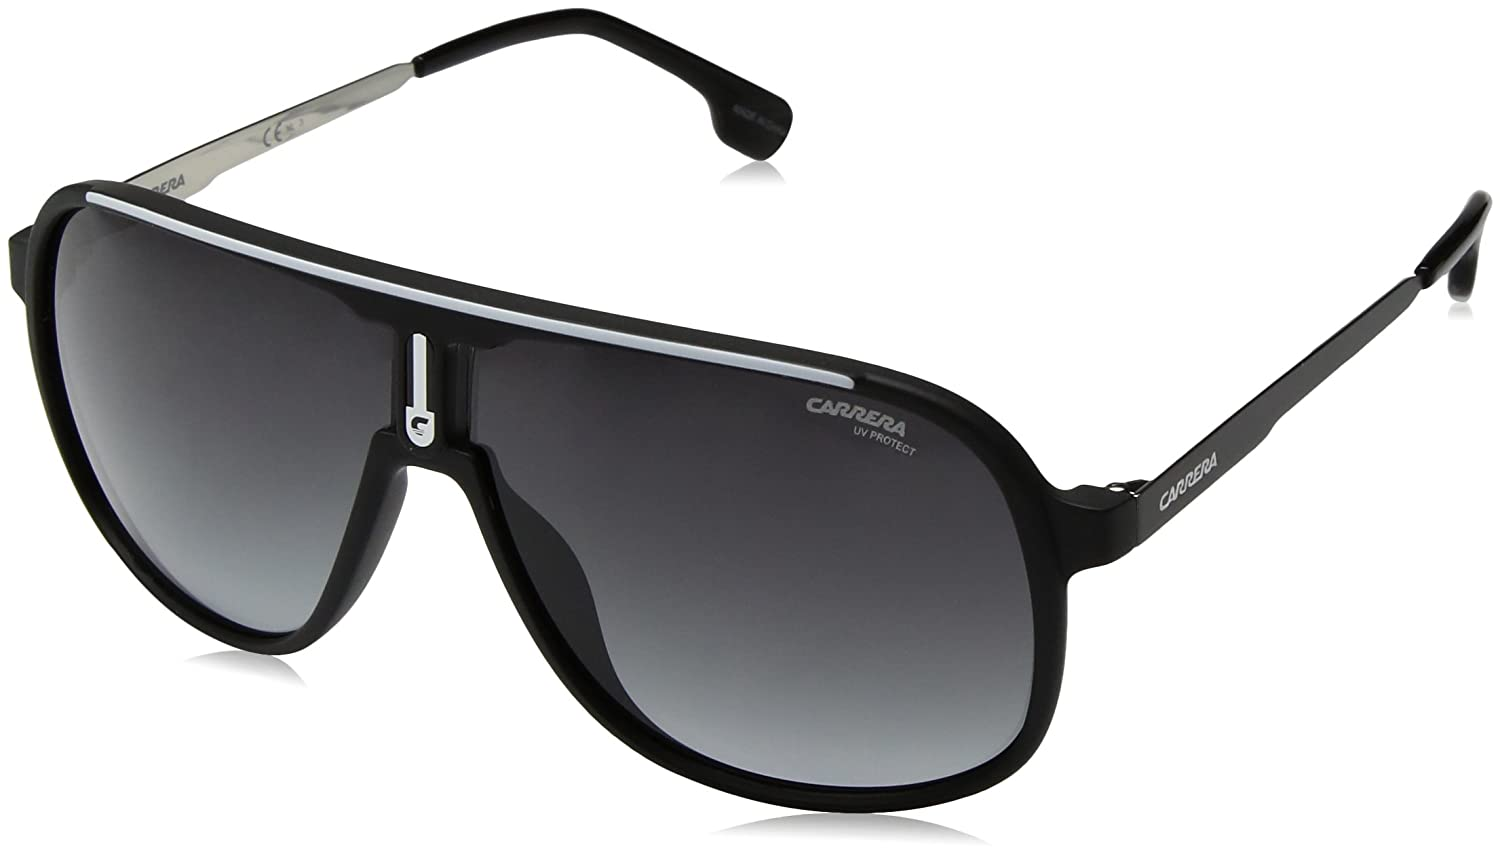 信頼 Carrera Black ユニセックスアダルト B0716L2J37 Matte Black B0716L2J37 With Lens Dark Gray Gradient Lens, 大槌町:c5607ced --- vilazh.indexis.ru